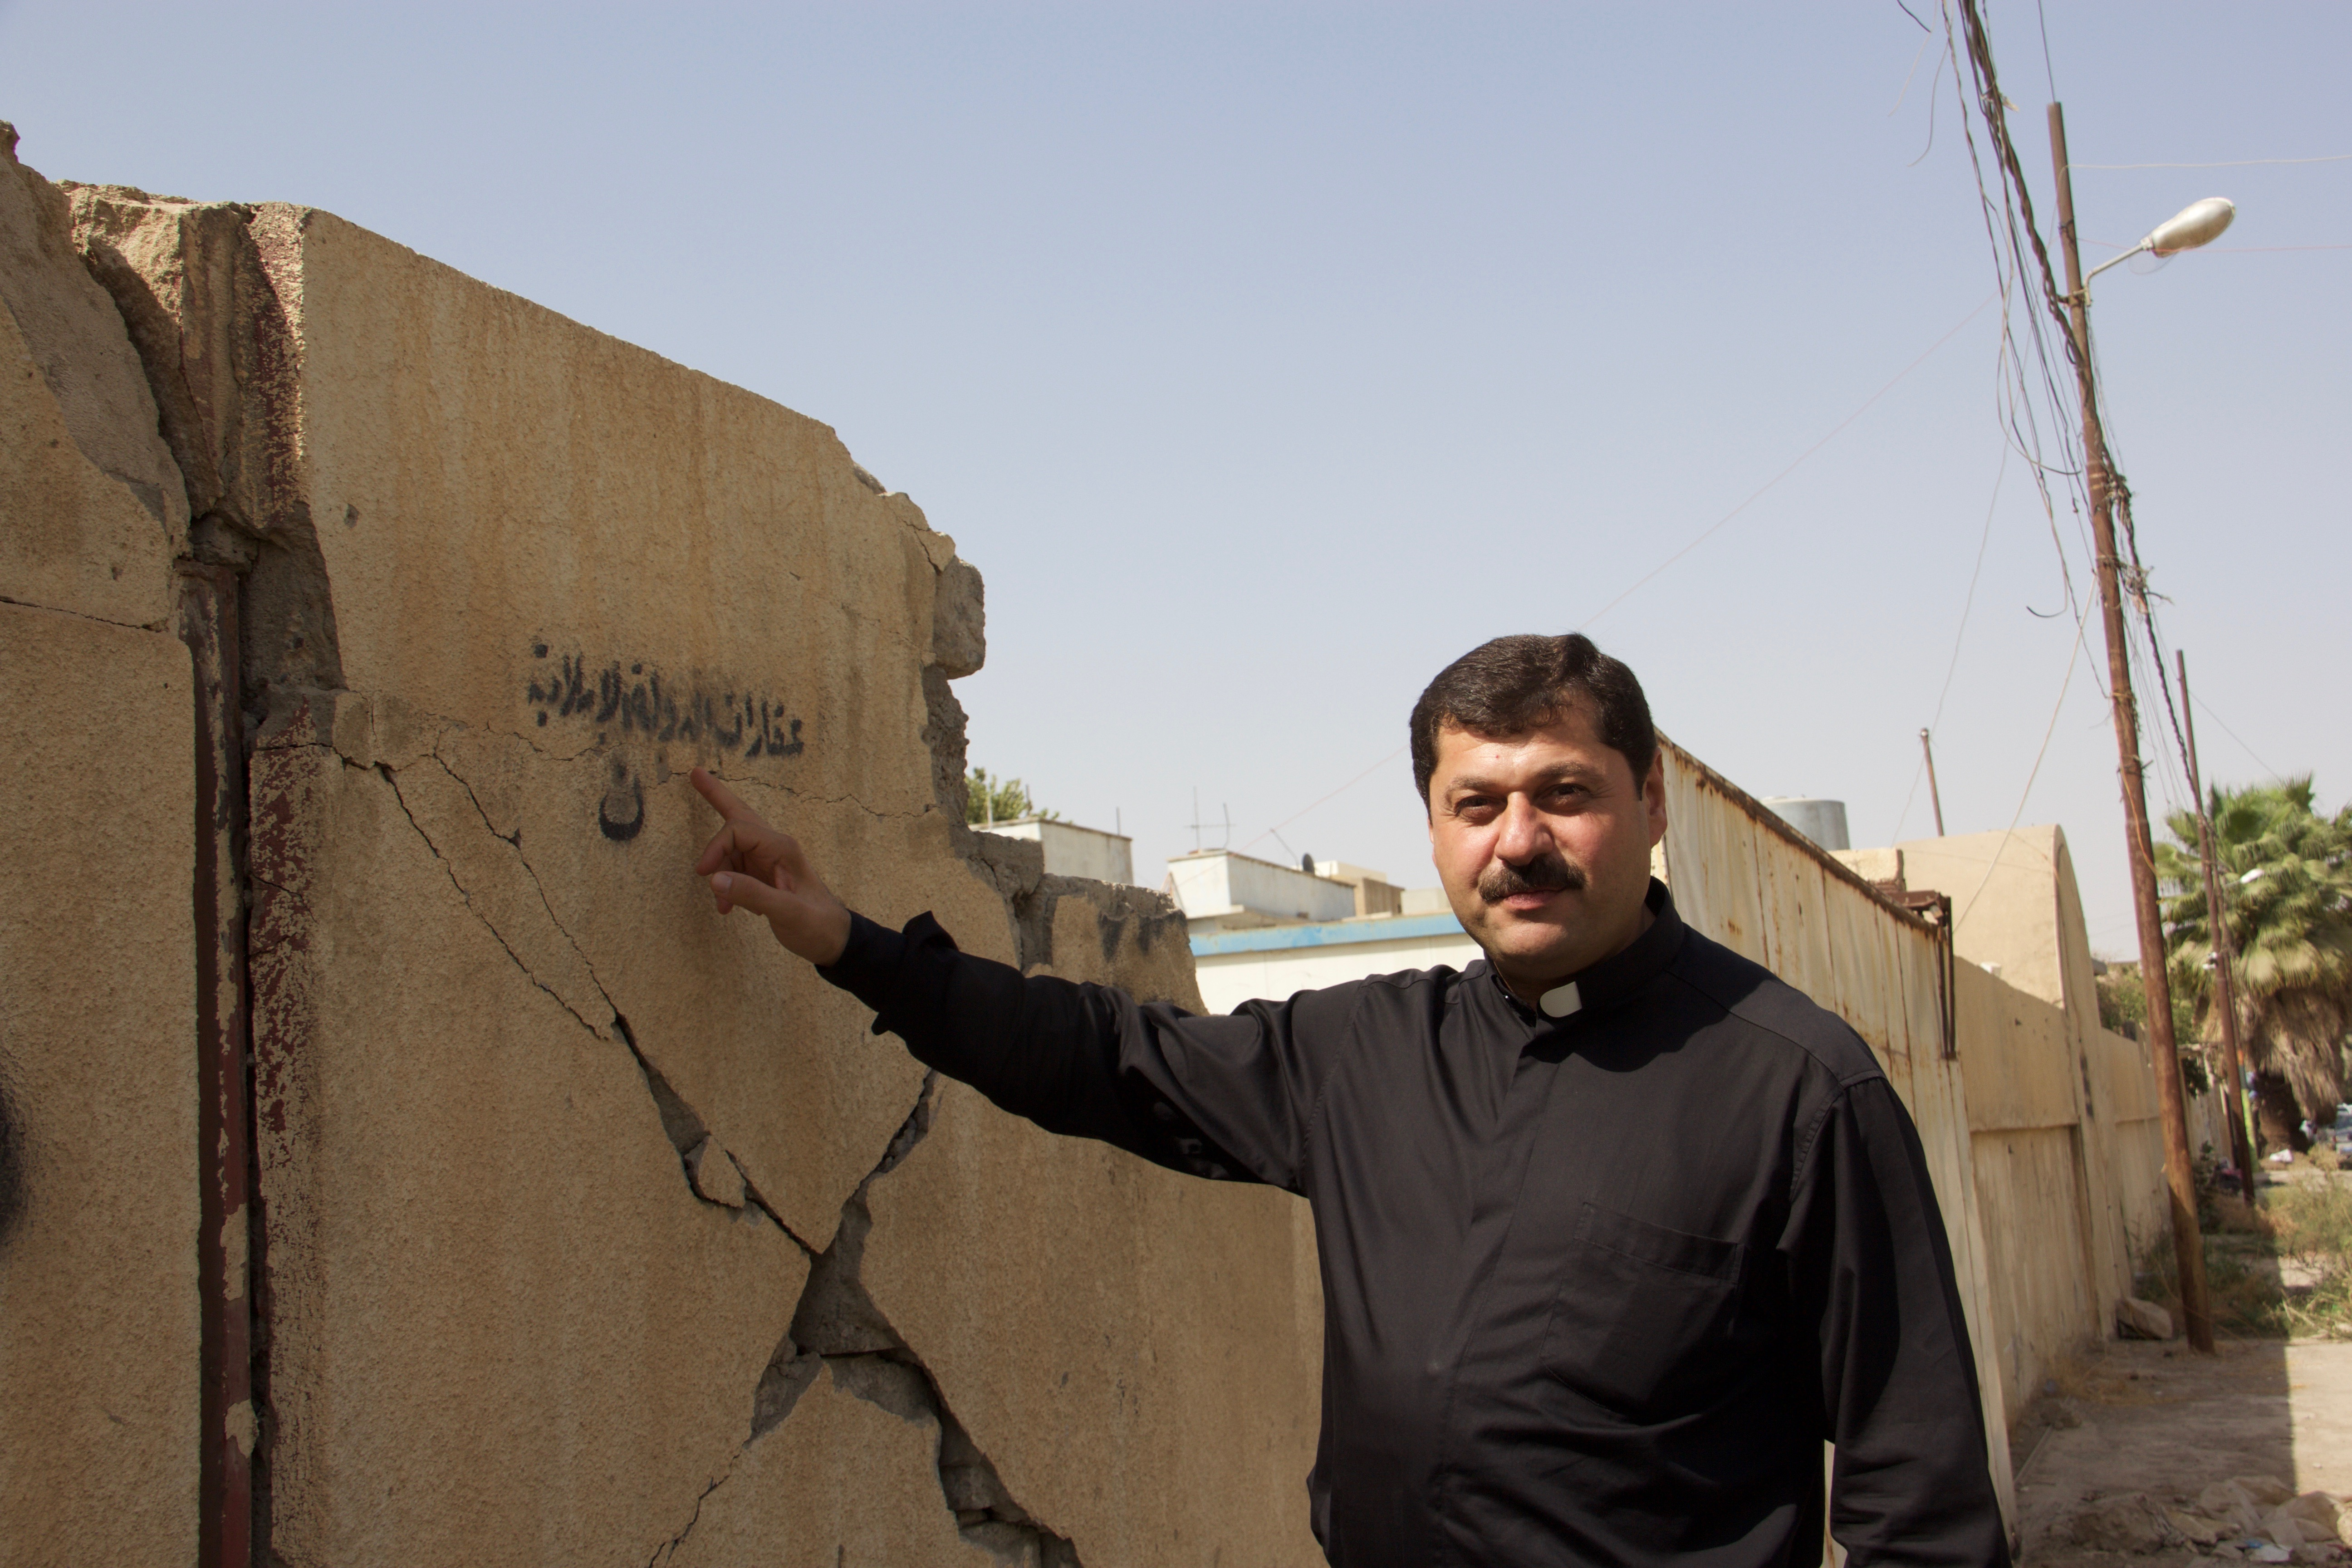 """Image: Father Emanuel Adel Kloo, a Syriac Catholic priest, points to now-outdated graffiti left by Daesh: """"Christians, this property belongs to the Islamic State."""" (Kevin Clarke)"""